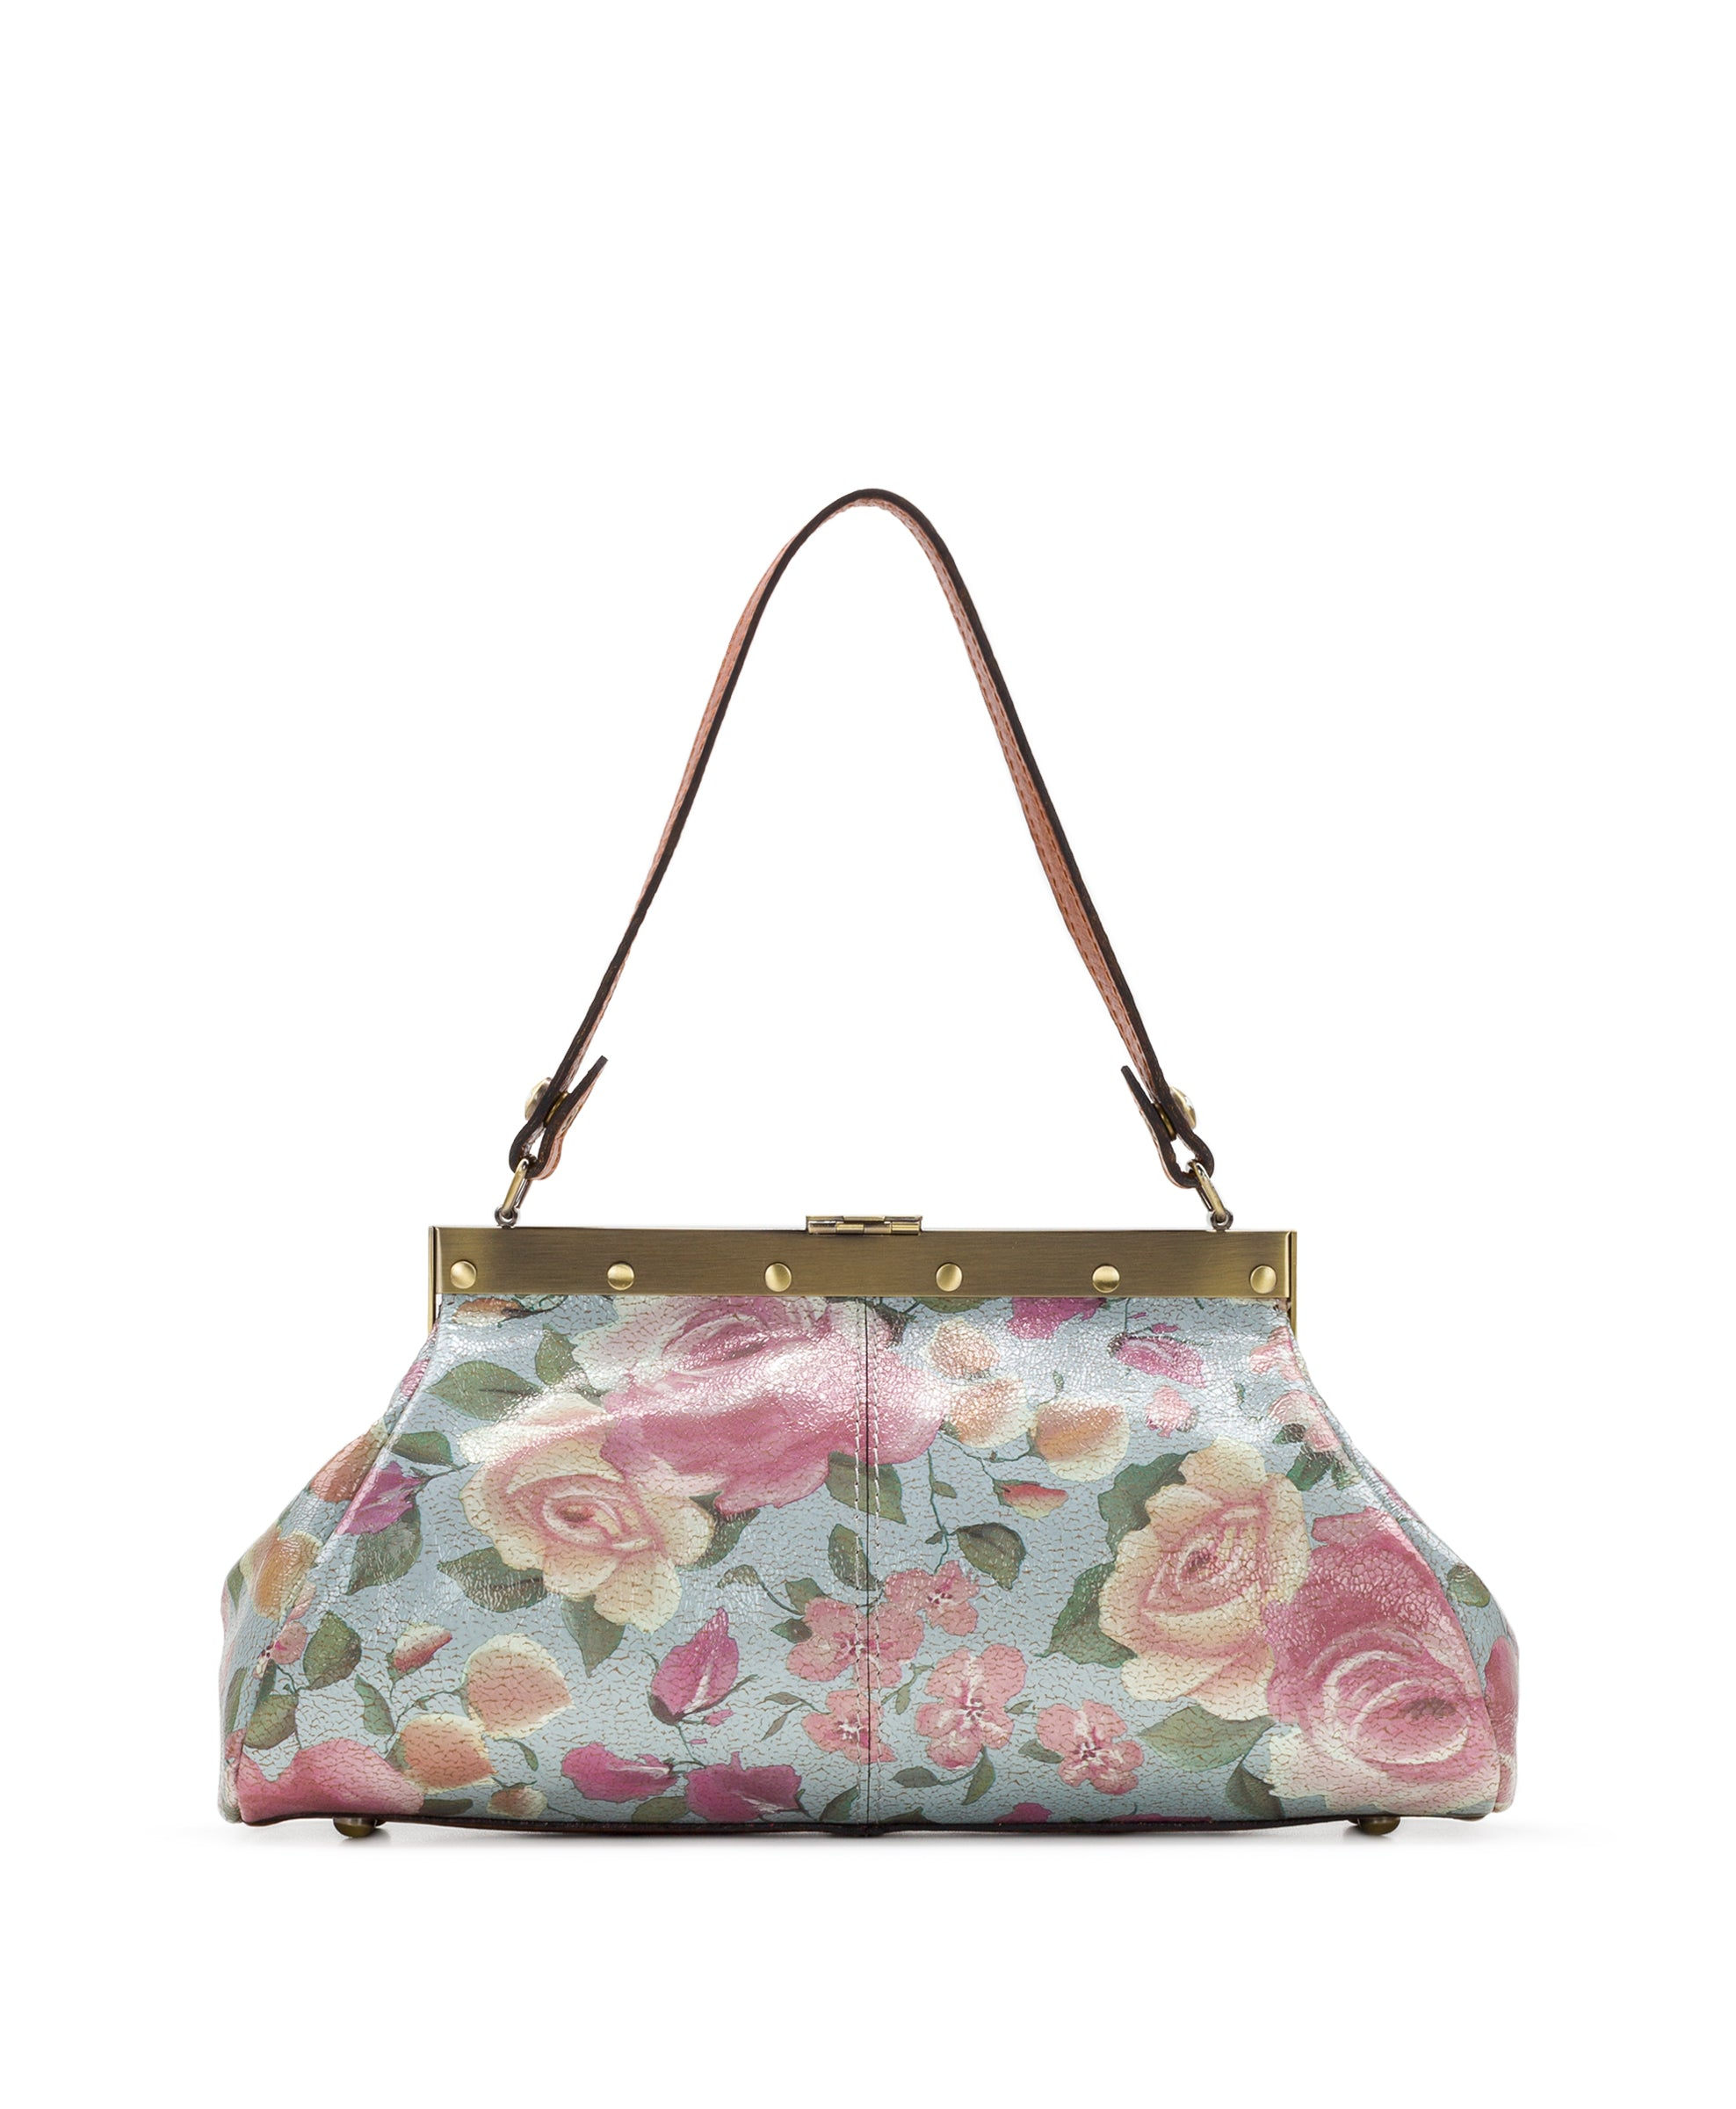 Ferrara Frame Satchel - Crackled Rose - Ferrara Frame Satchel - Crackled Rose